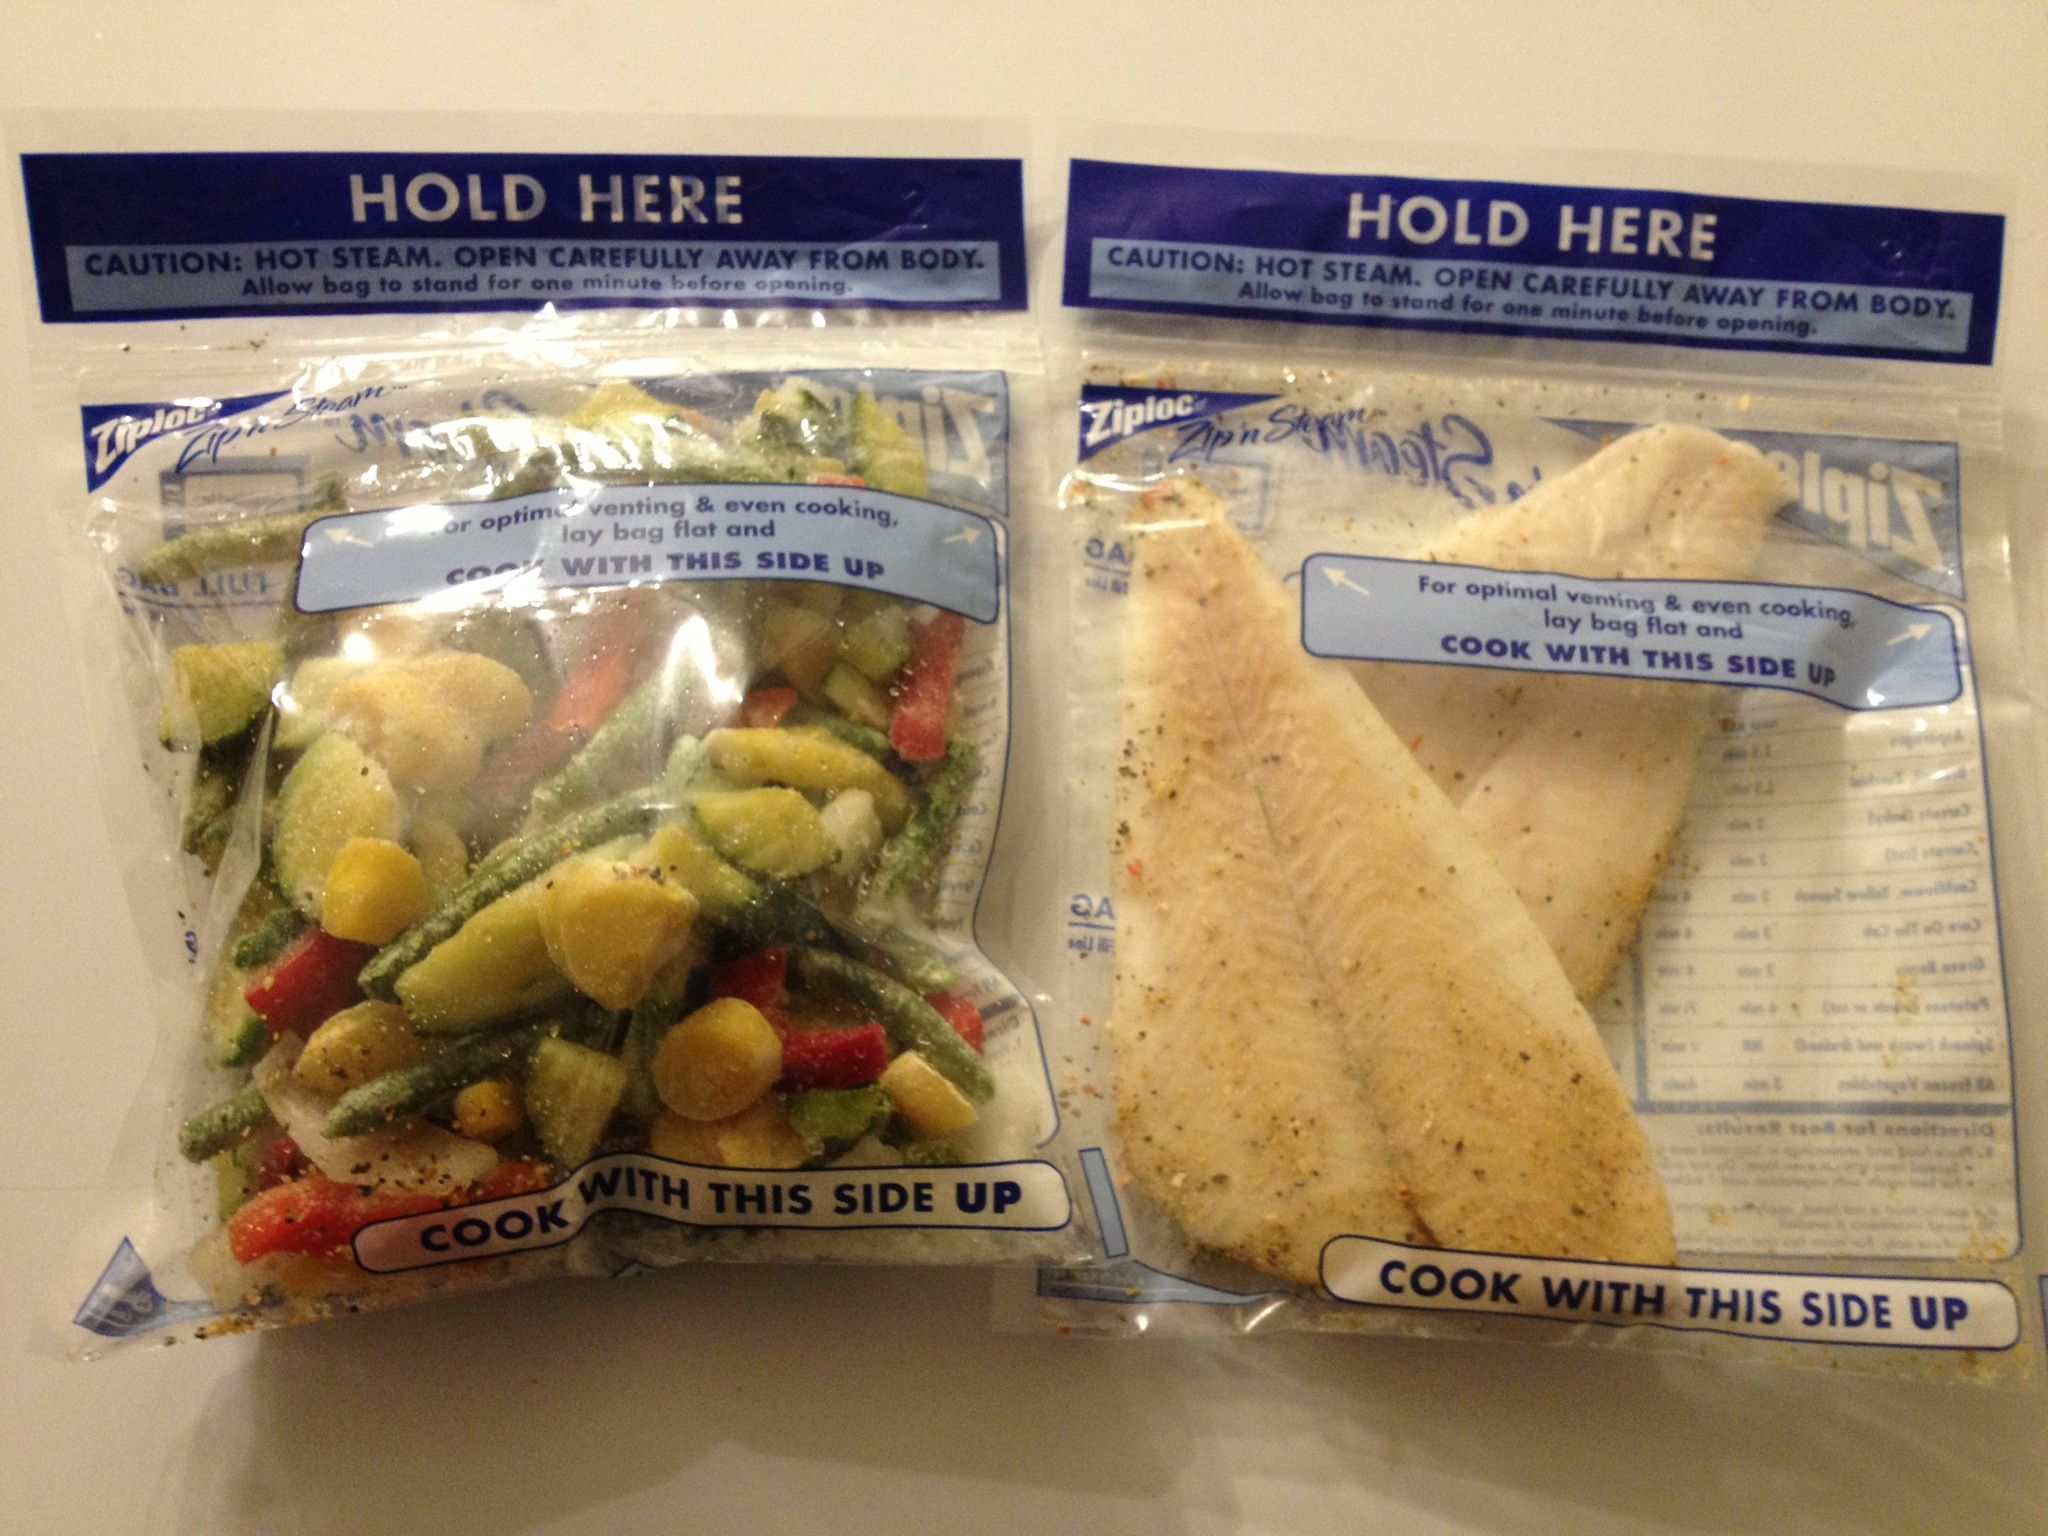 Healthy Meals Can Be Made Quickly And Still Yummy Using Ziplock Steam Bags Good For Fish Veggies En Place Desired Meat Or In